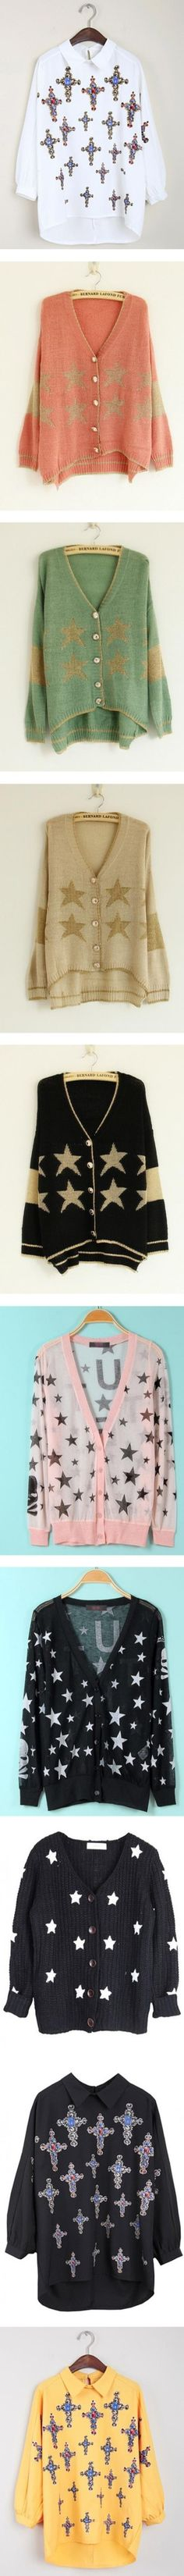 """""""Star Cardigan"""" by udobuy ❤ liked on Polyvore"""